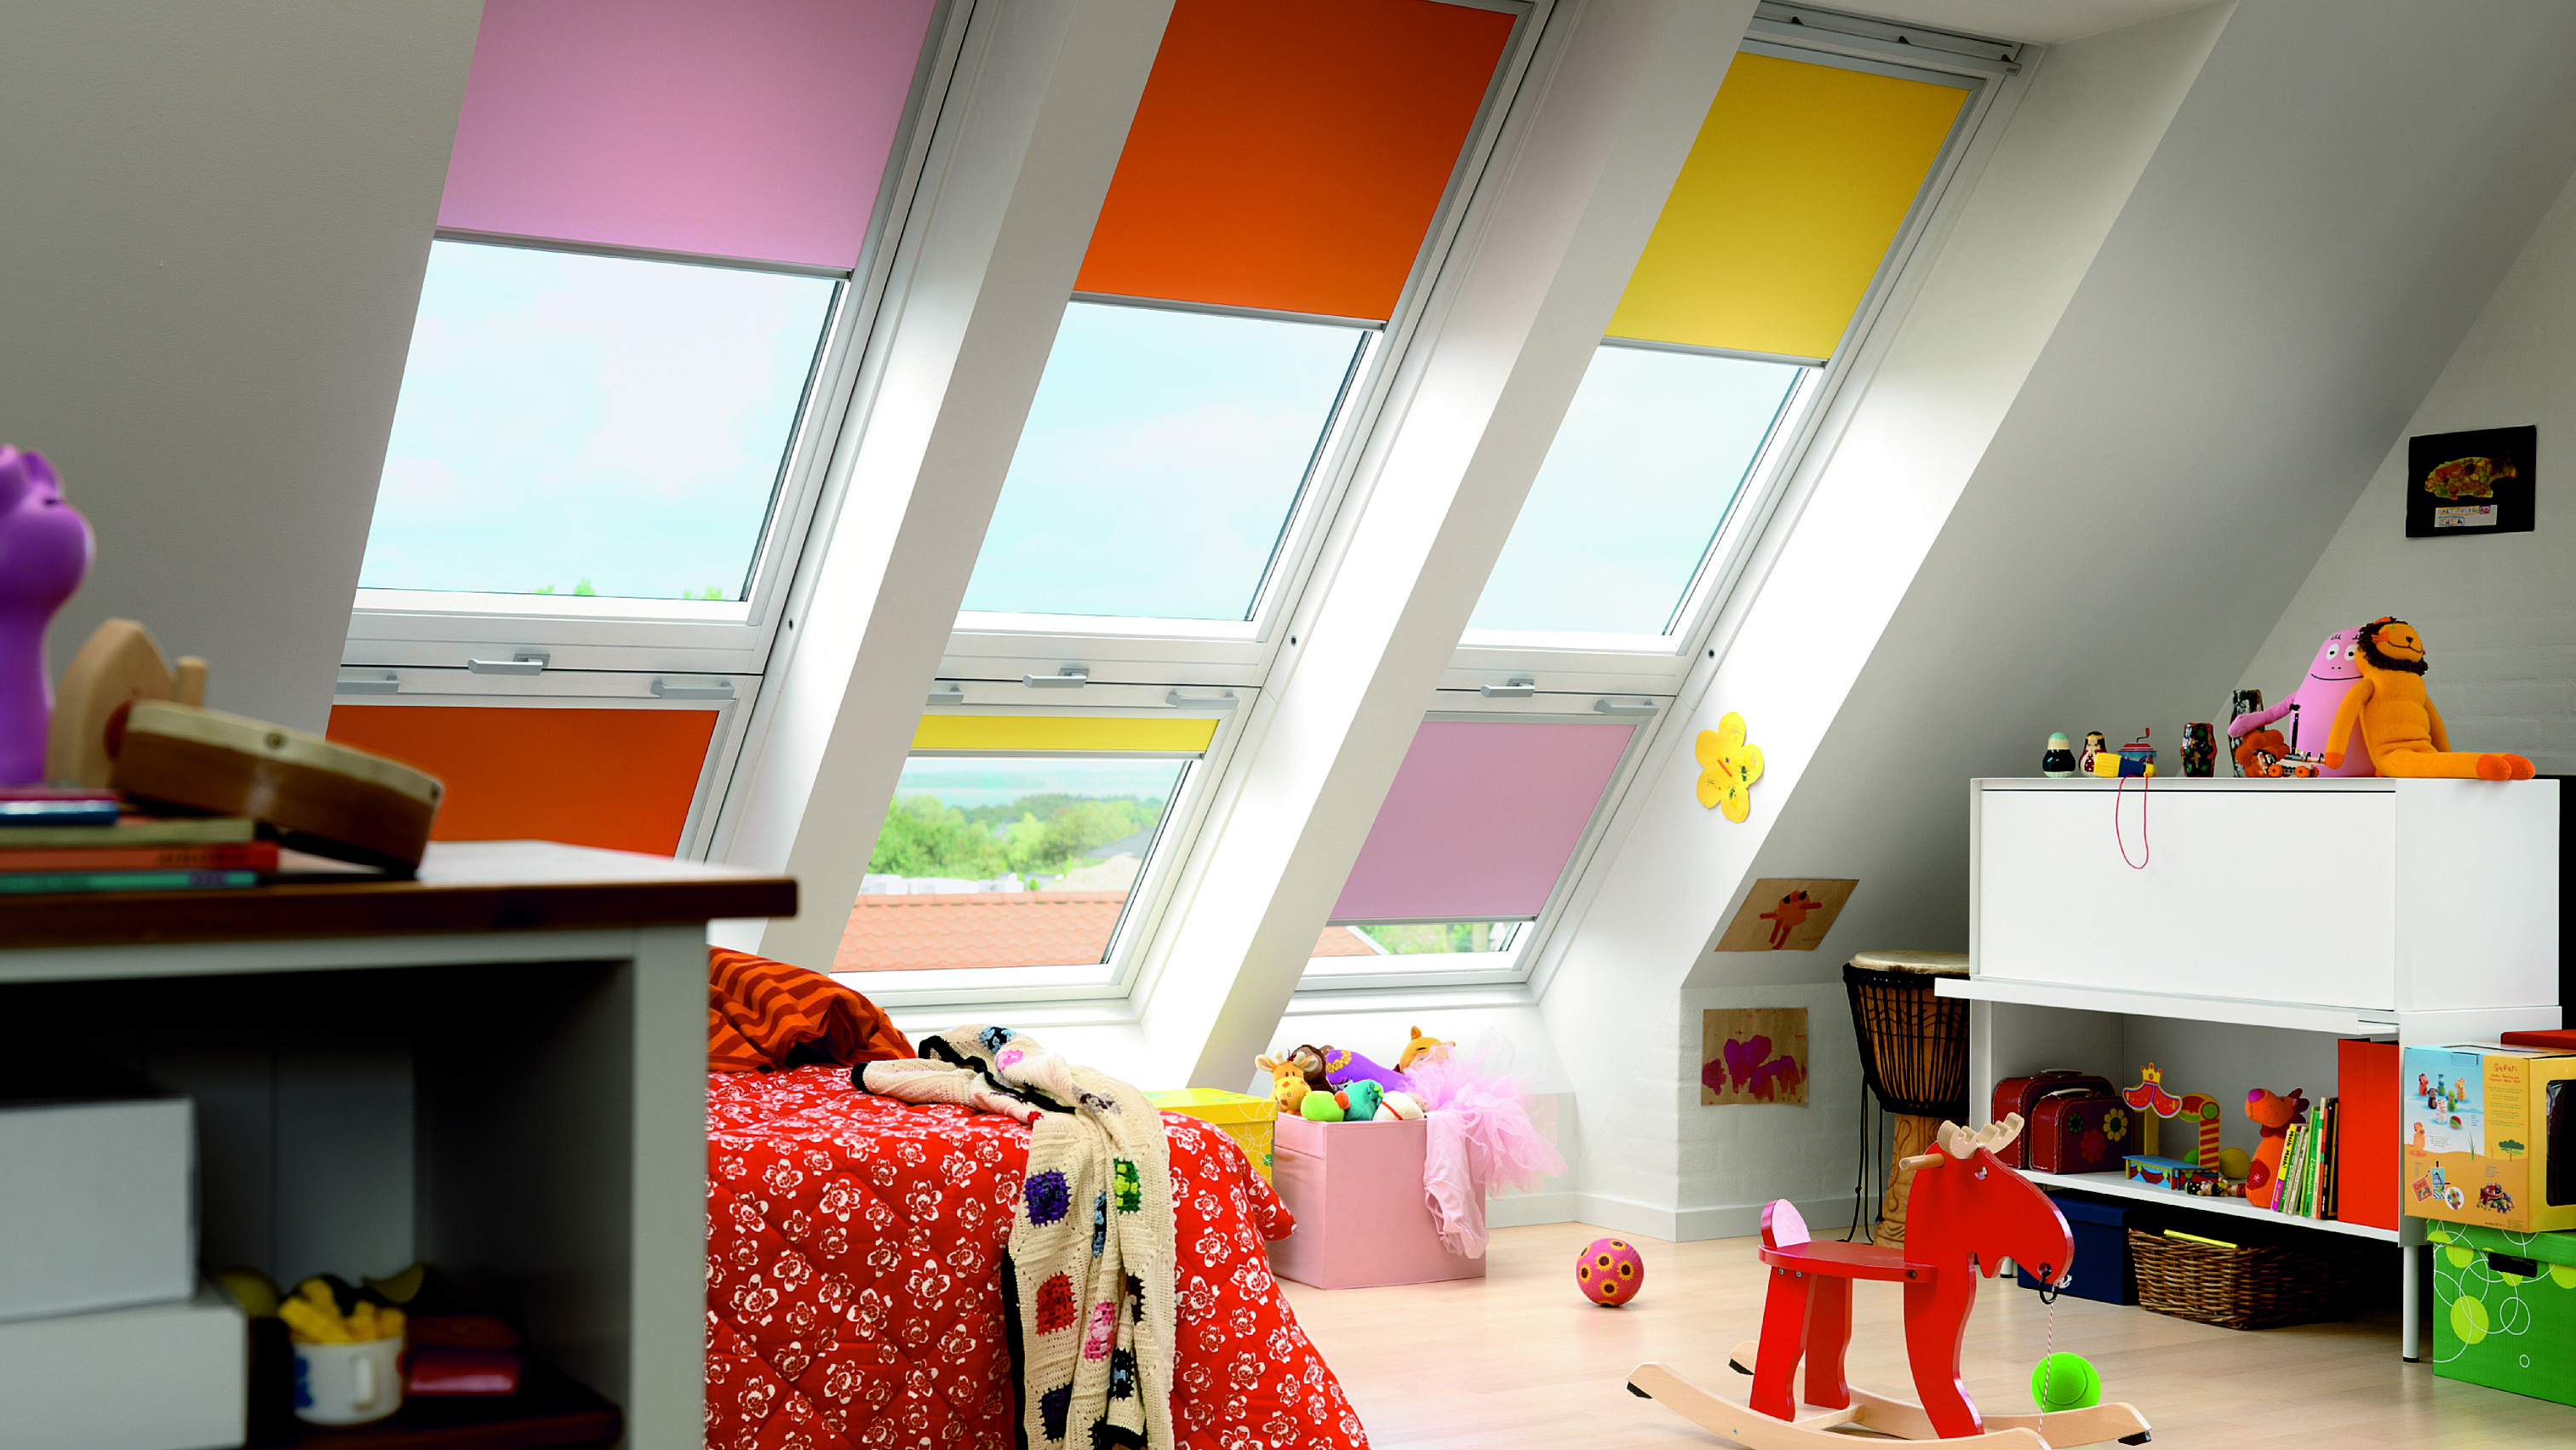 Kitchen Extensions With Velux Windows Buyer S Guide To Roof Blinds For Lofts And Glazed Extensions